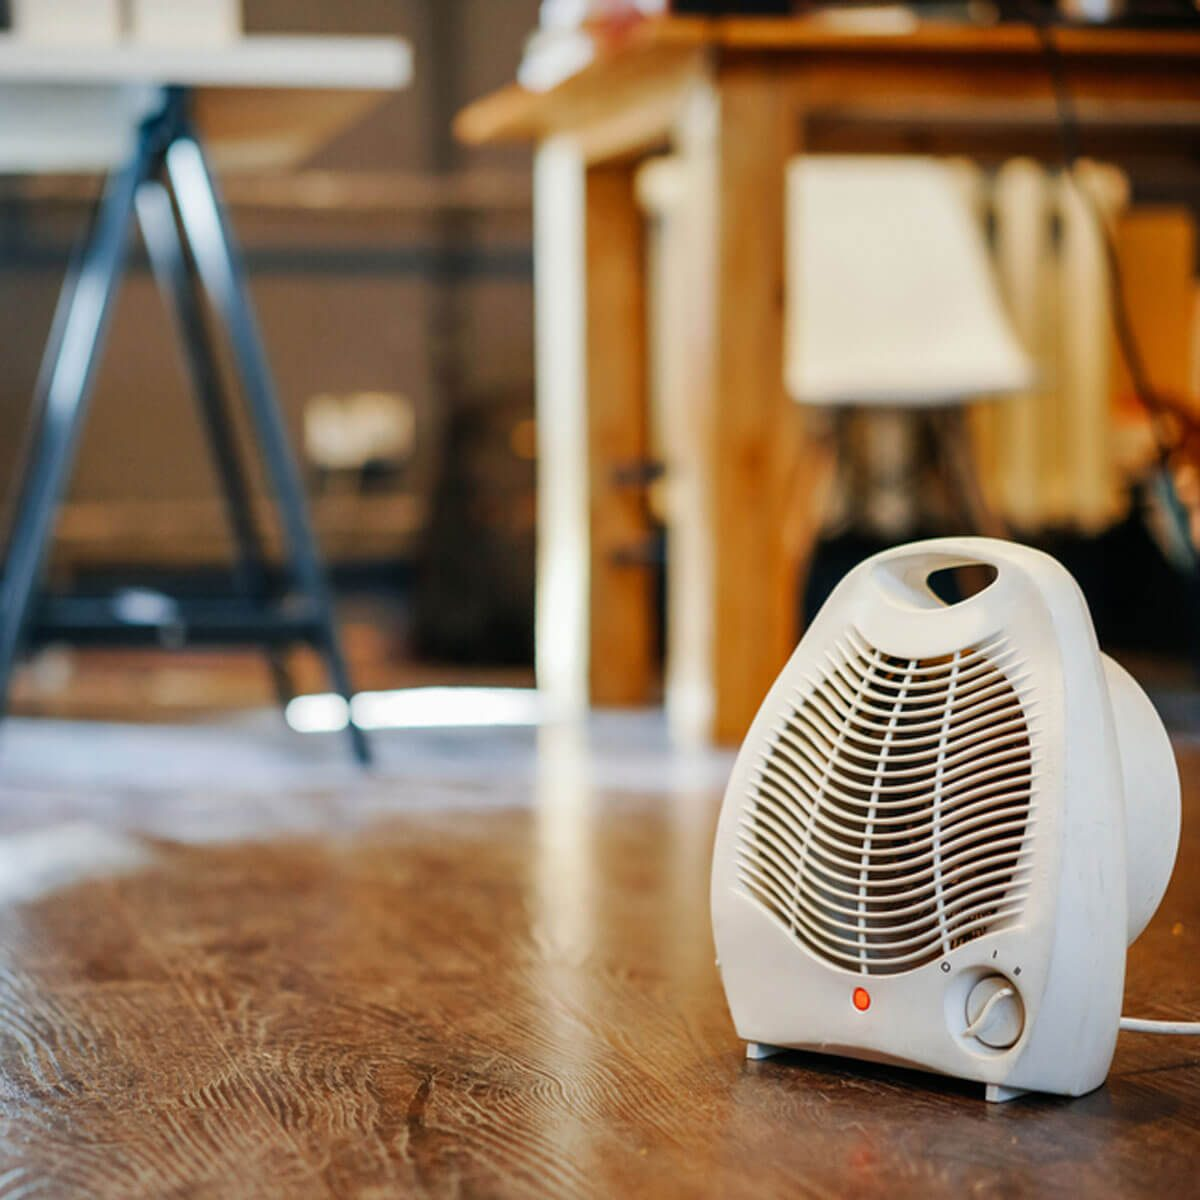 Use Space Heaters Safely